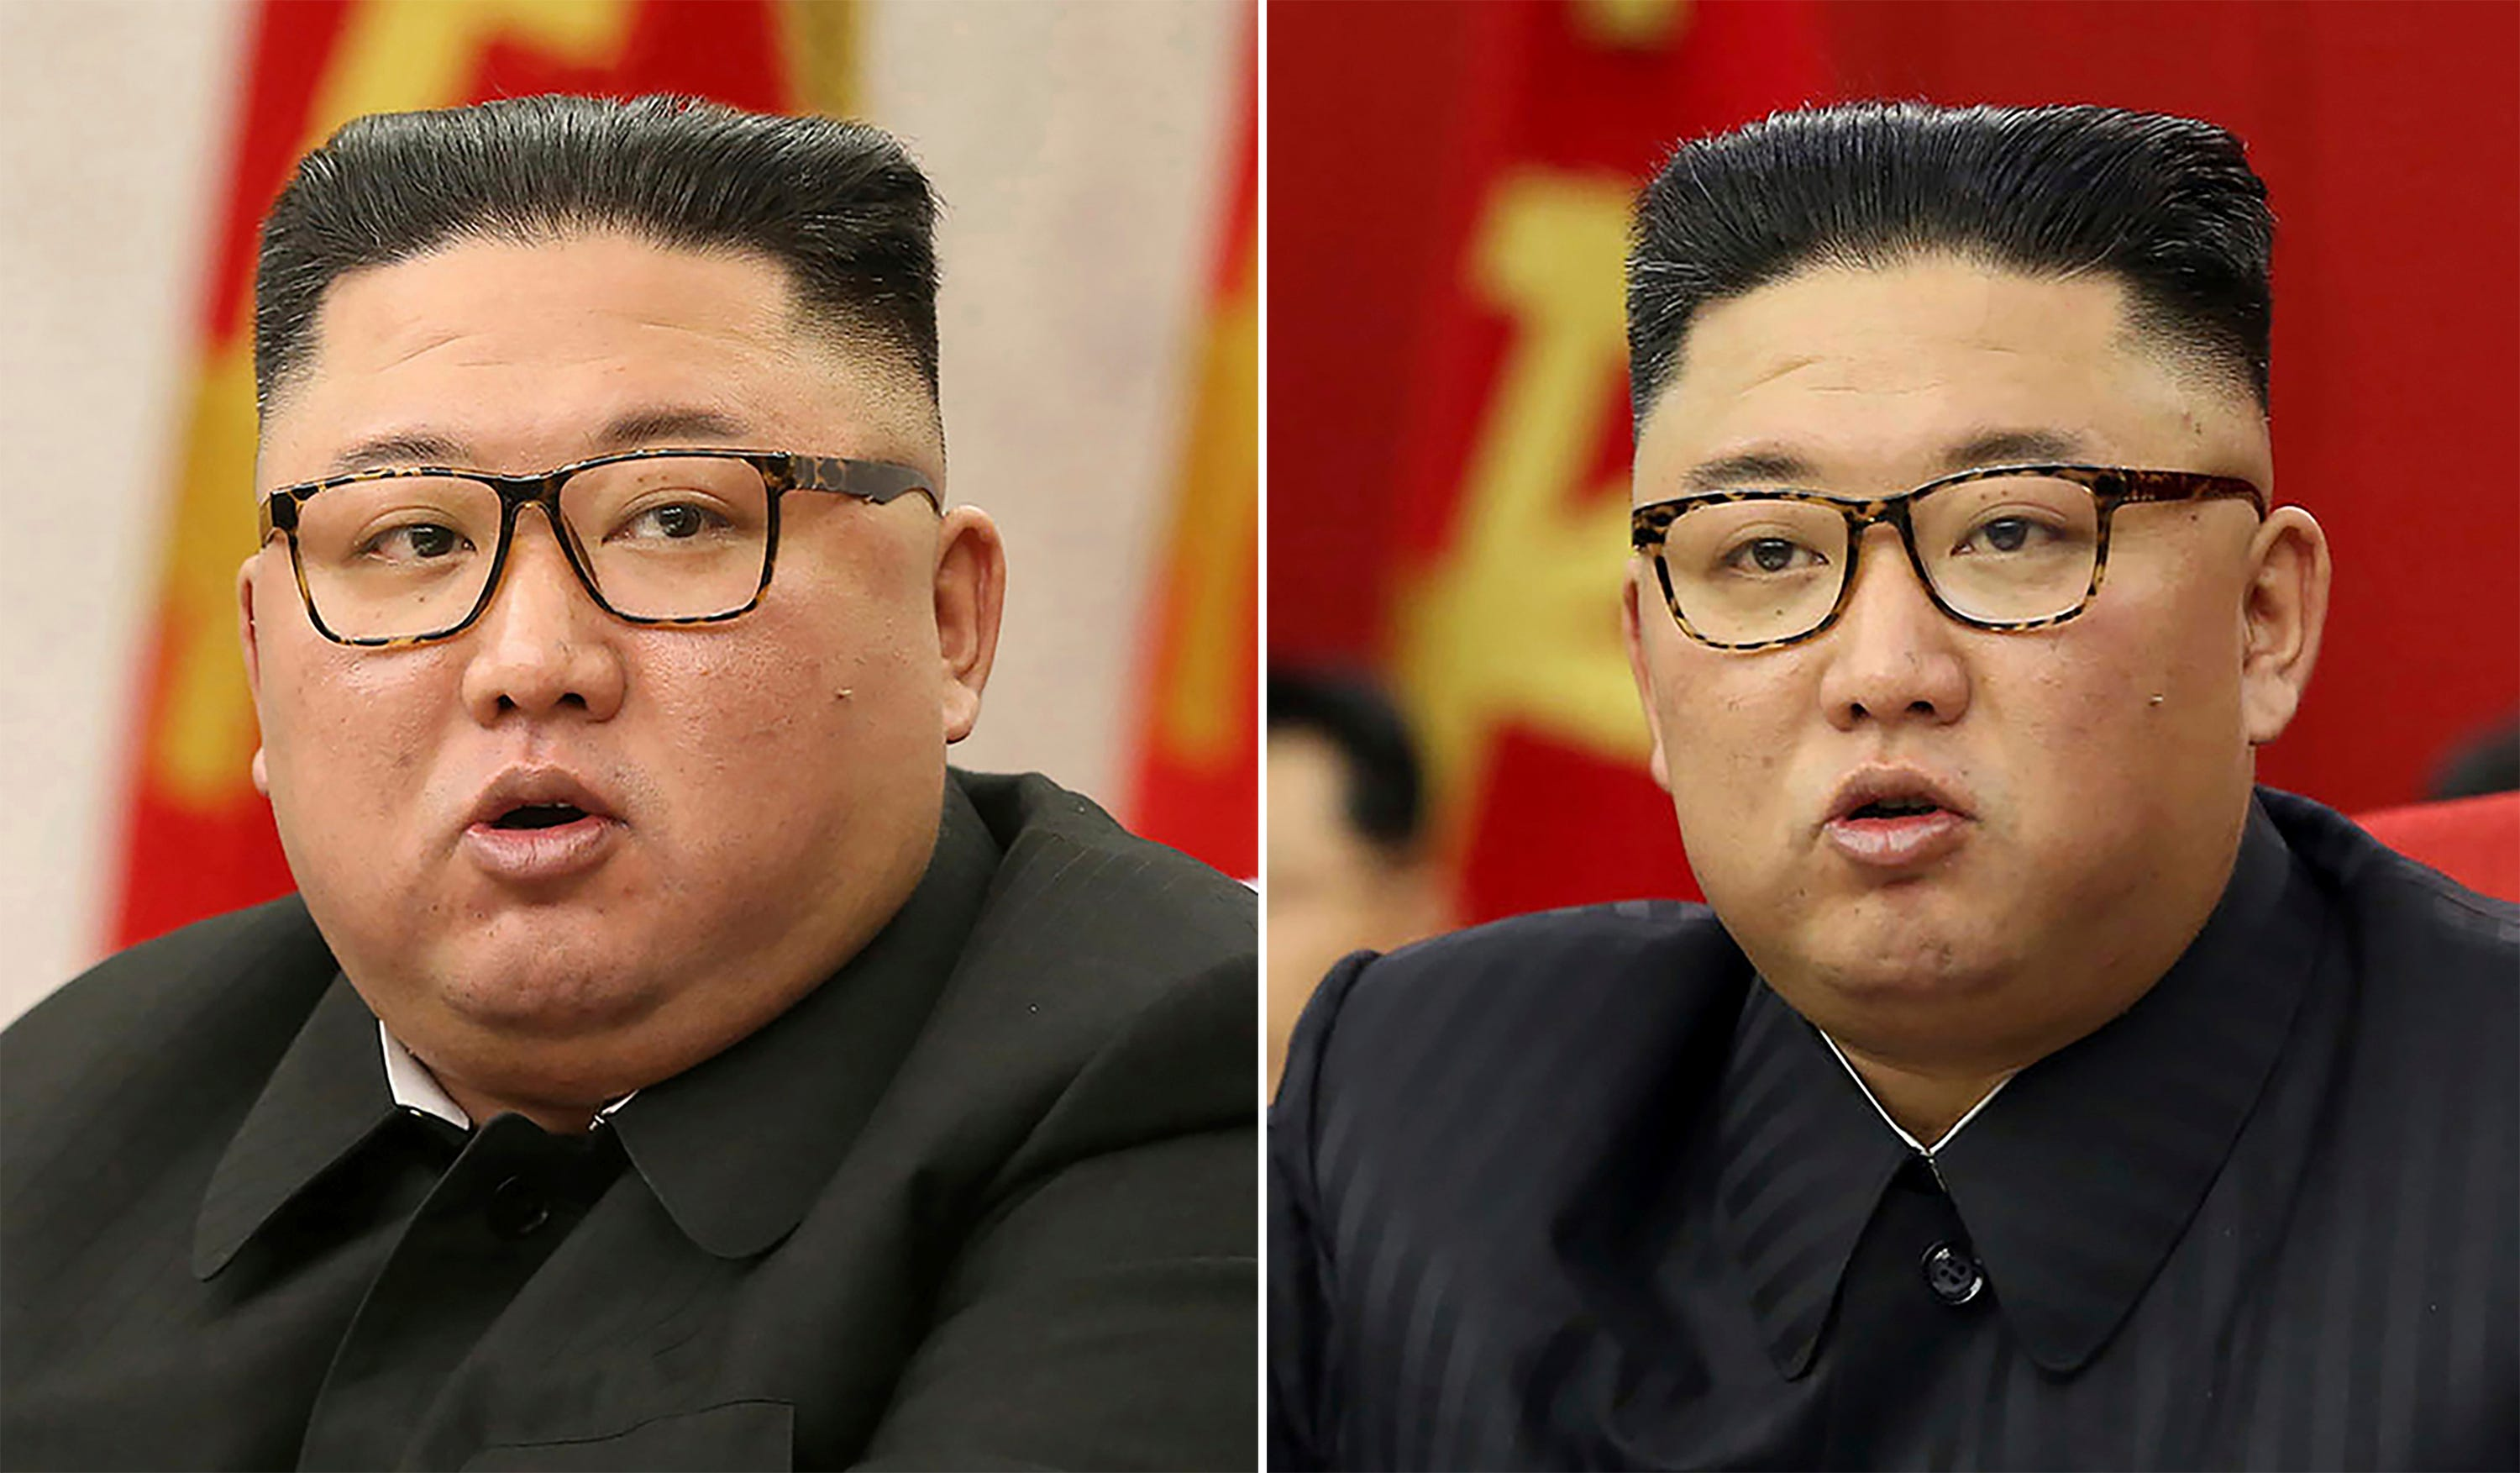 N Korea's Kim looks much thinner, causing speculation on health 2